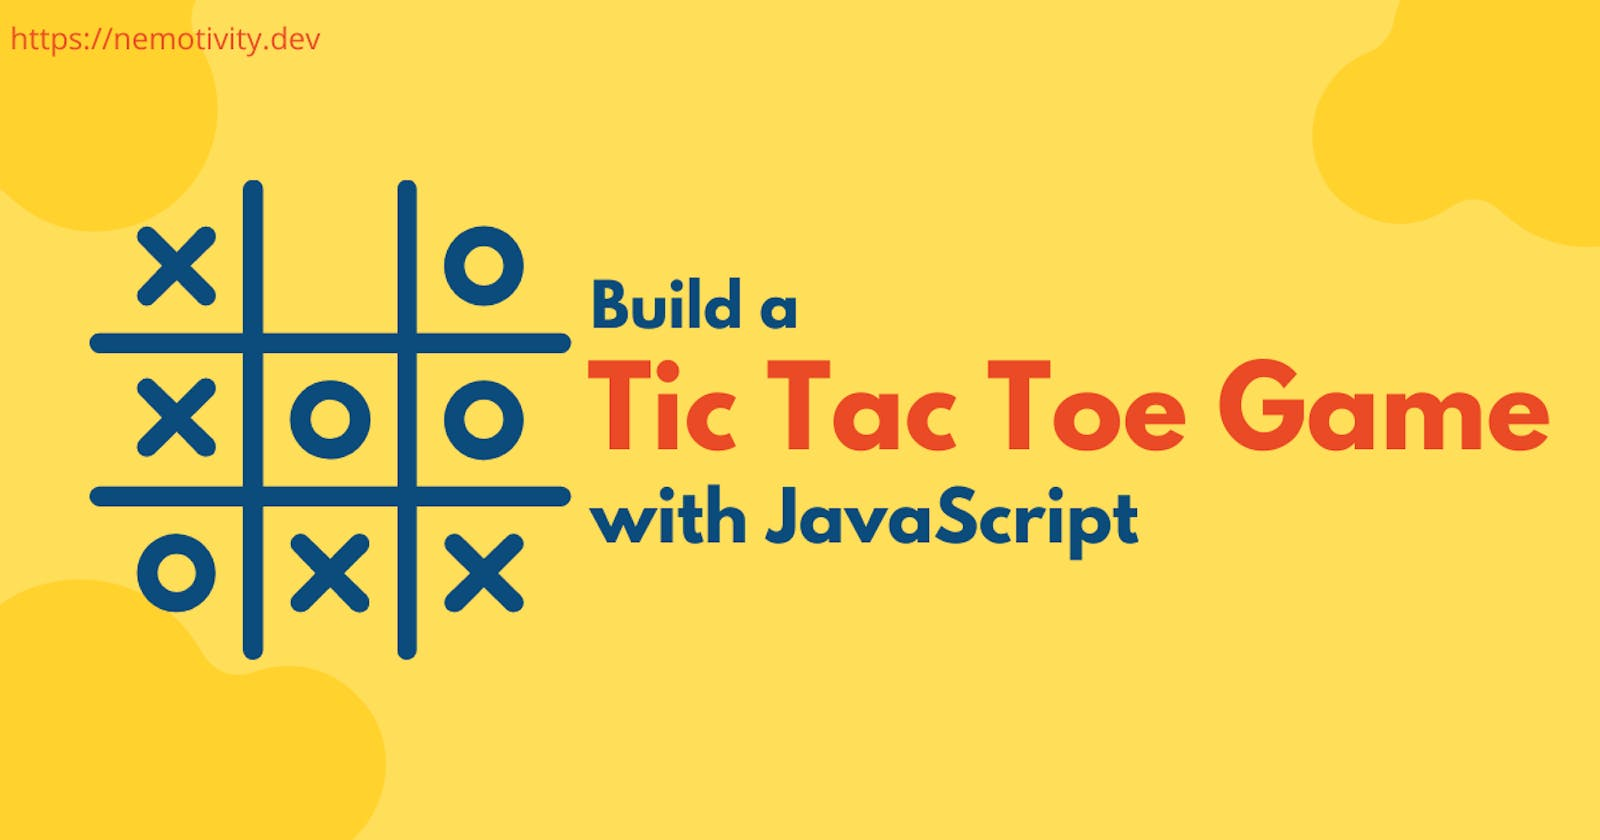 Build a Tic Tac Toe Game with JavaScript